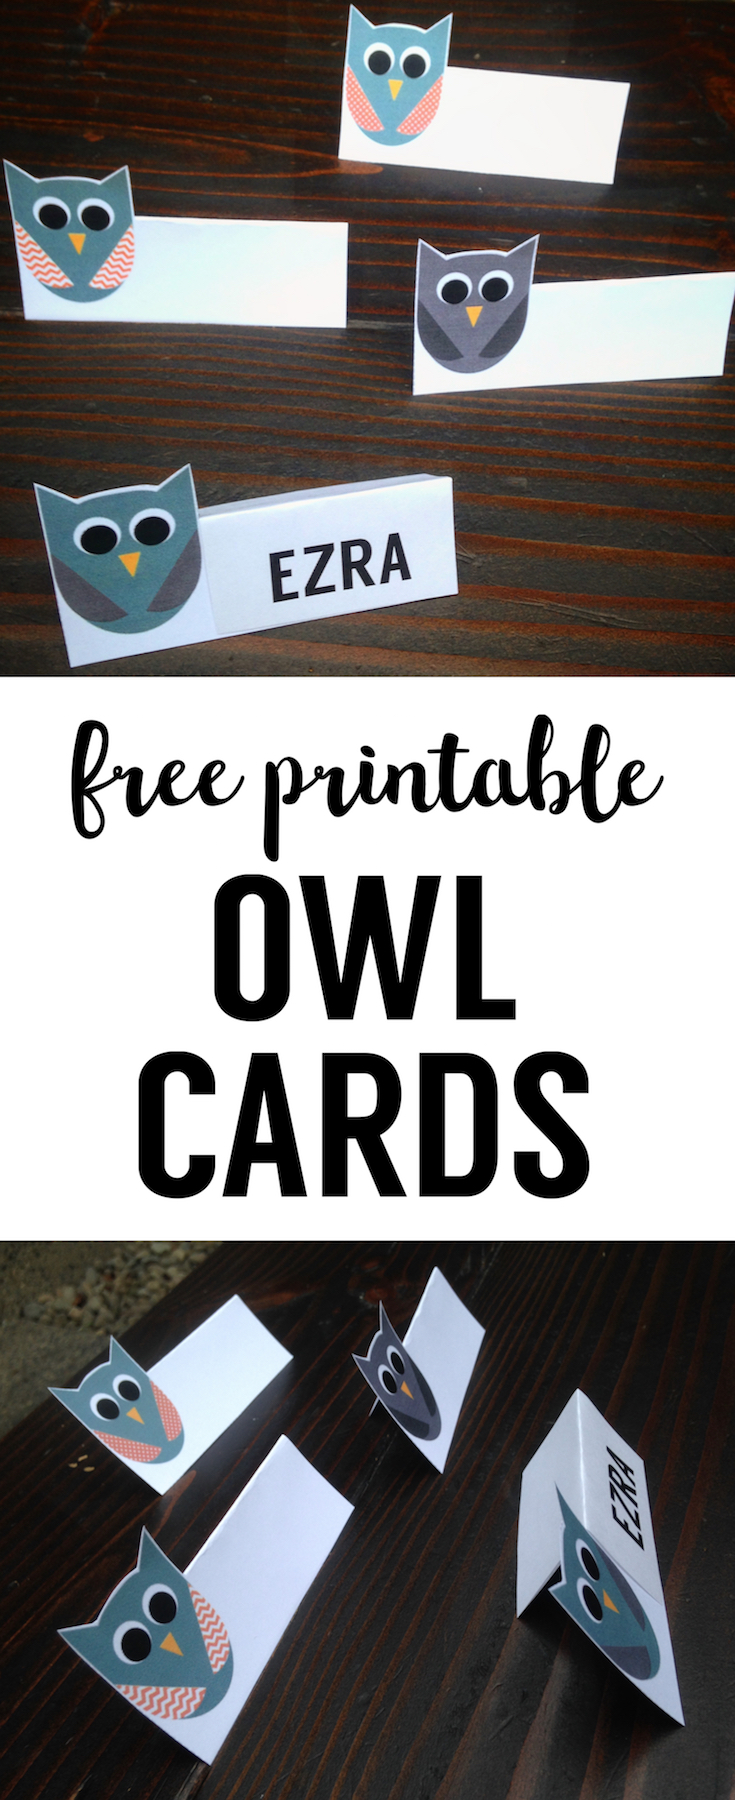 Free Printable Owl Tags. These owl printable tags are great DIY decor for owl place cards or owl food labels at an owl themed birthday party or owl themed baby shower.